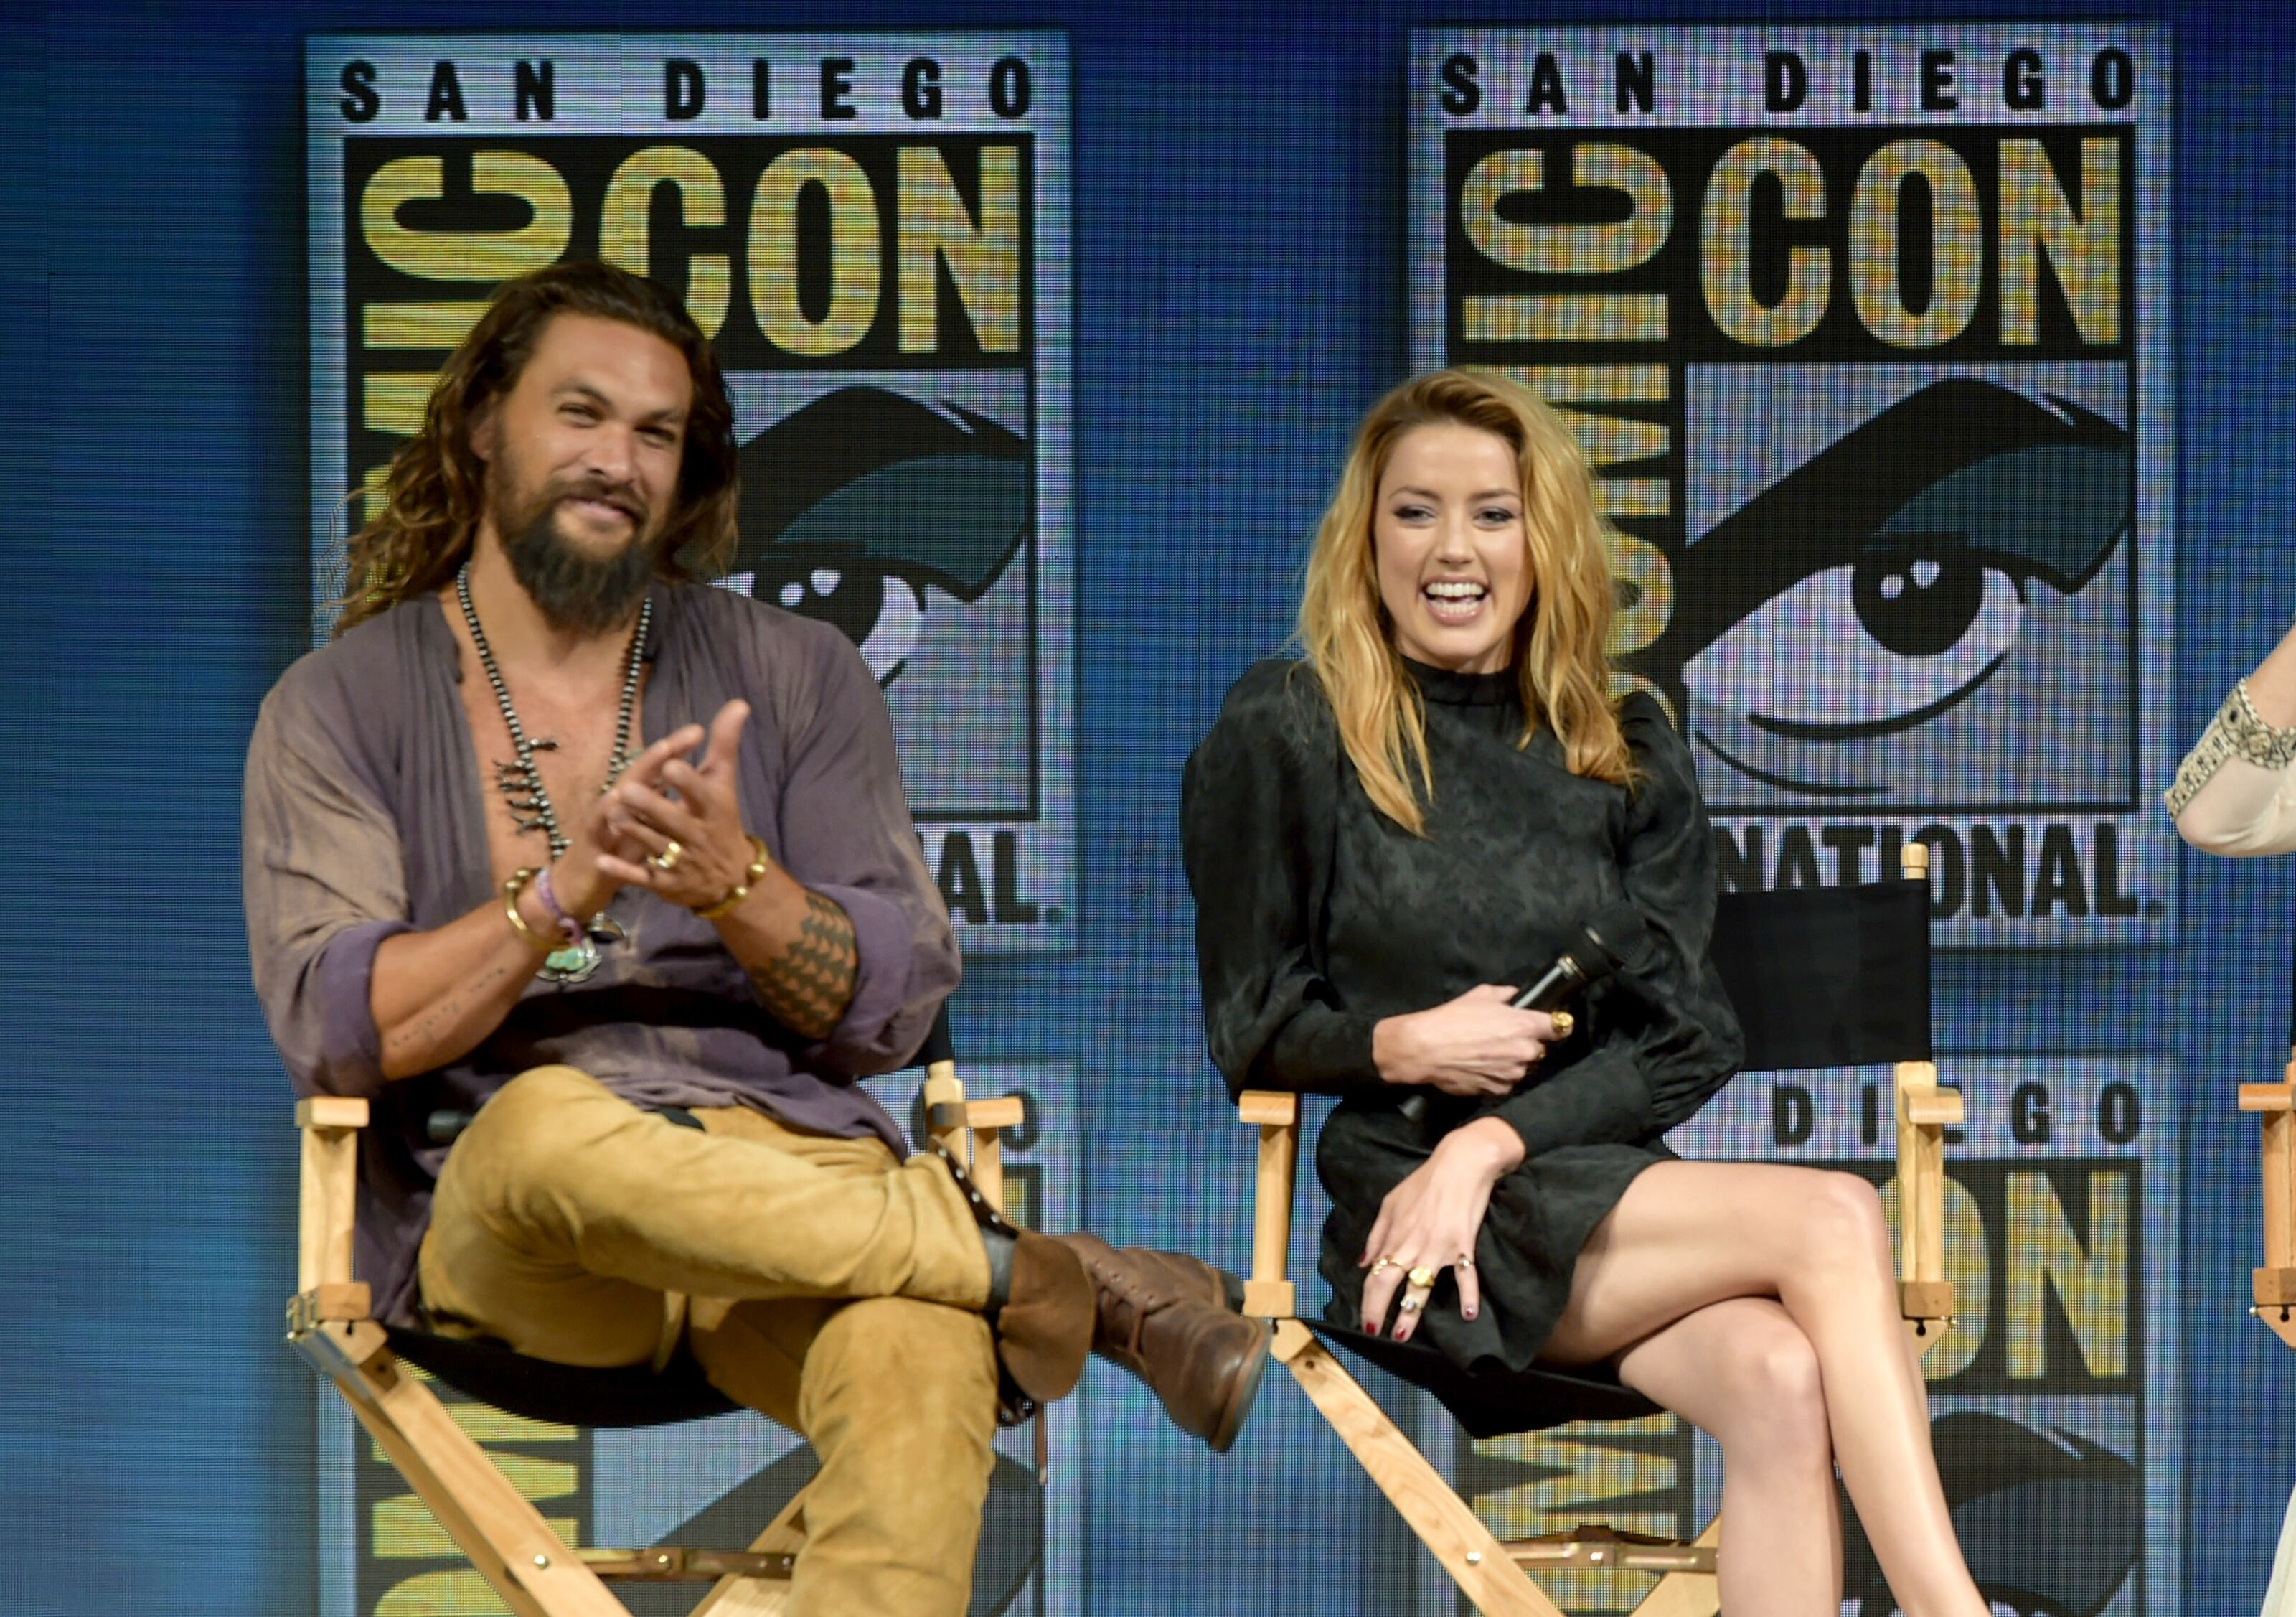 Aquaman could be headed for a $60 million opening weekend